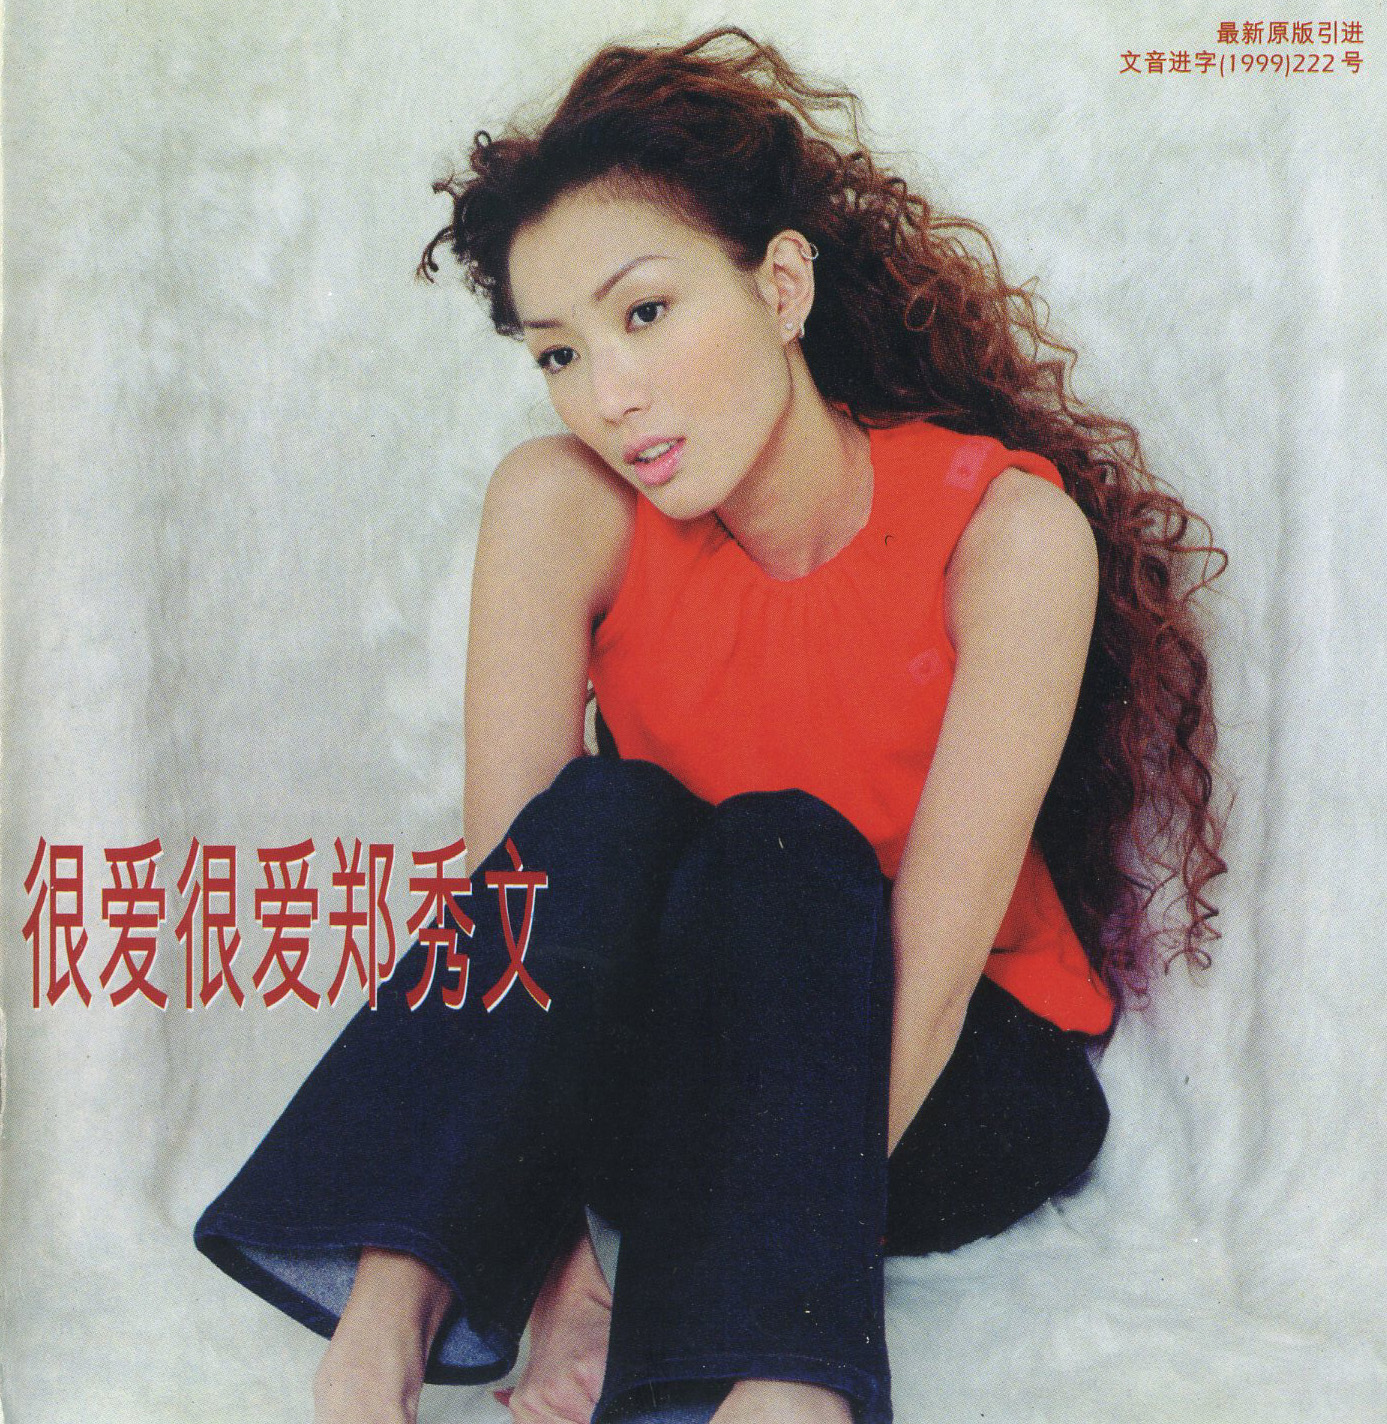 Sammi Cheng Album Art Covers 1998 to 1999